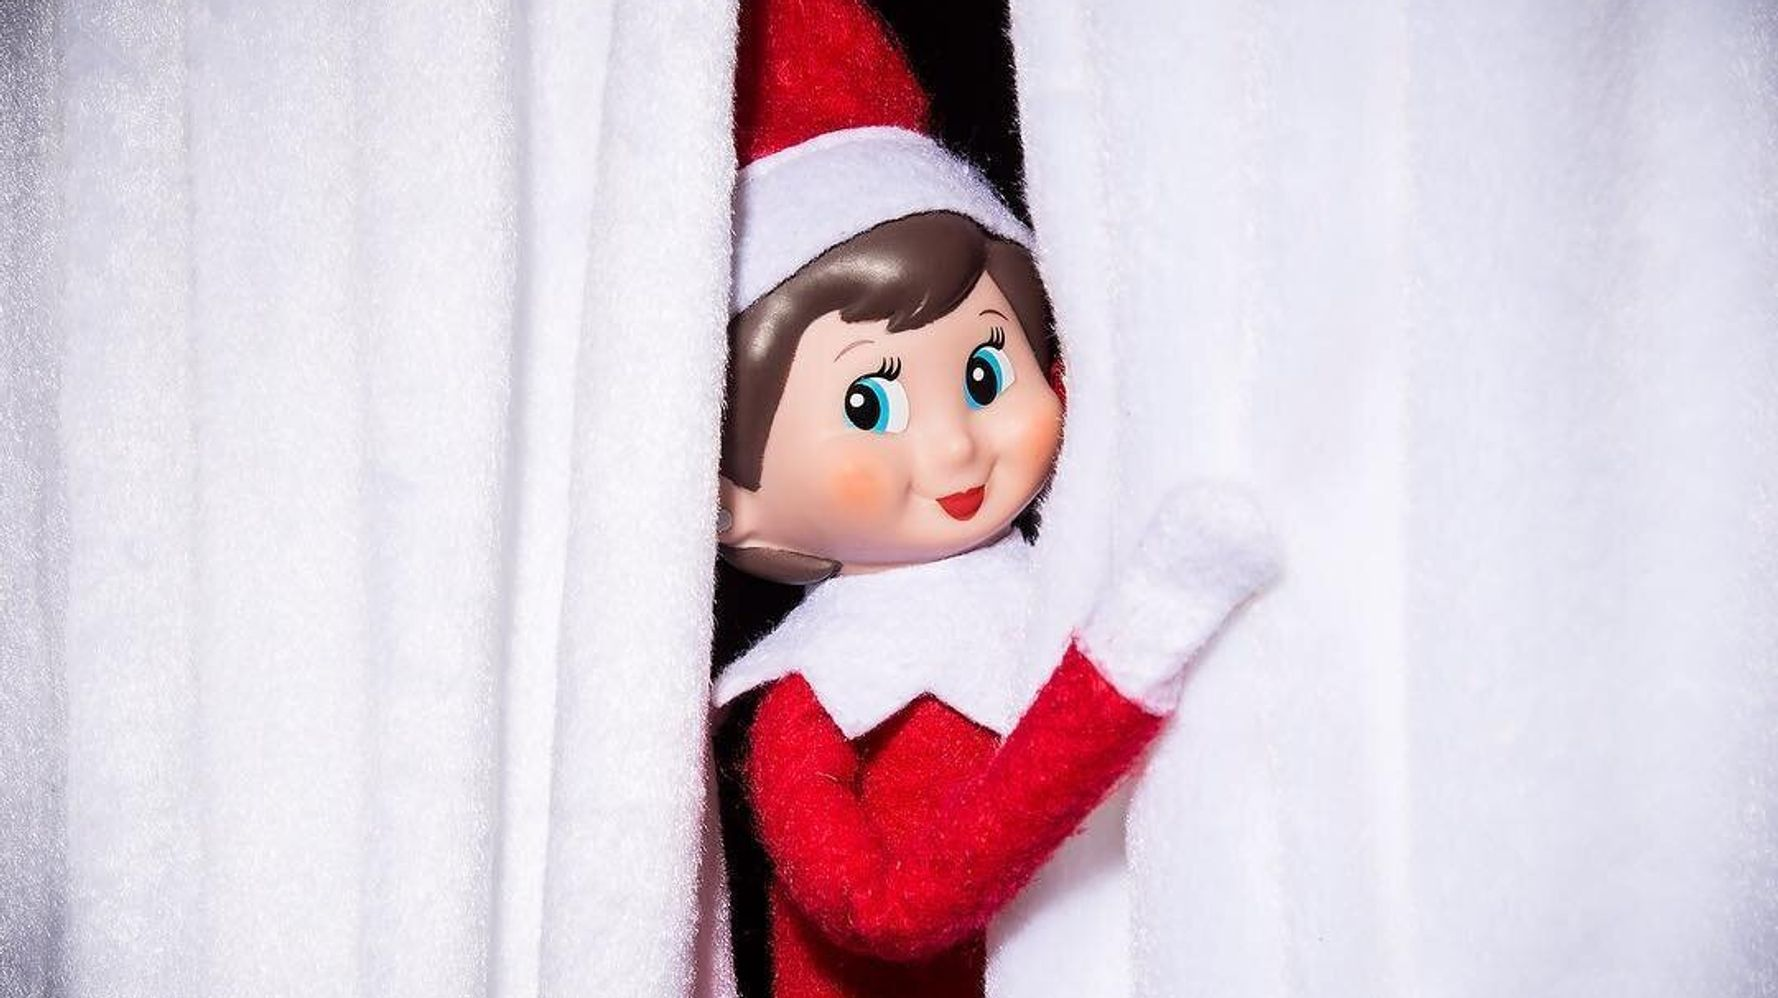 Where Did Elf On The Shelf Come From?